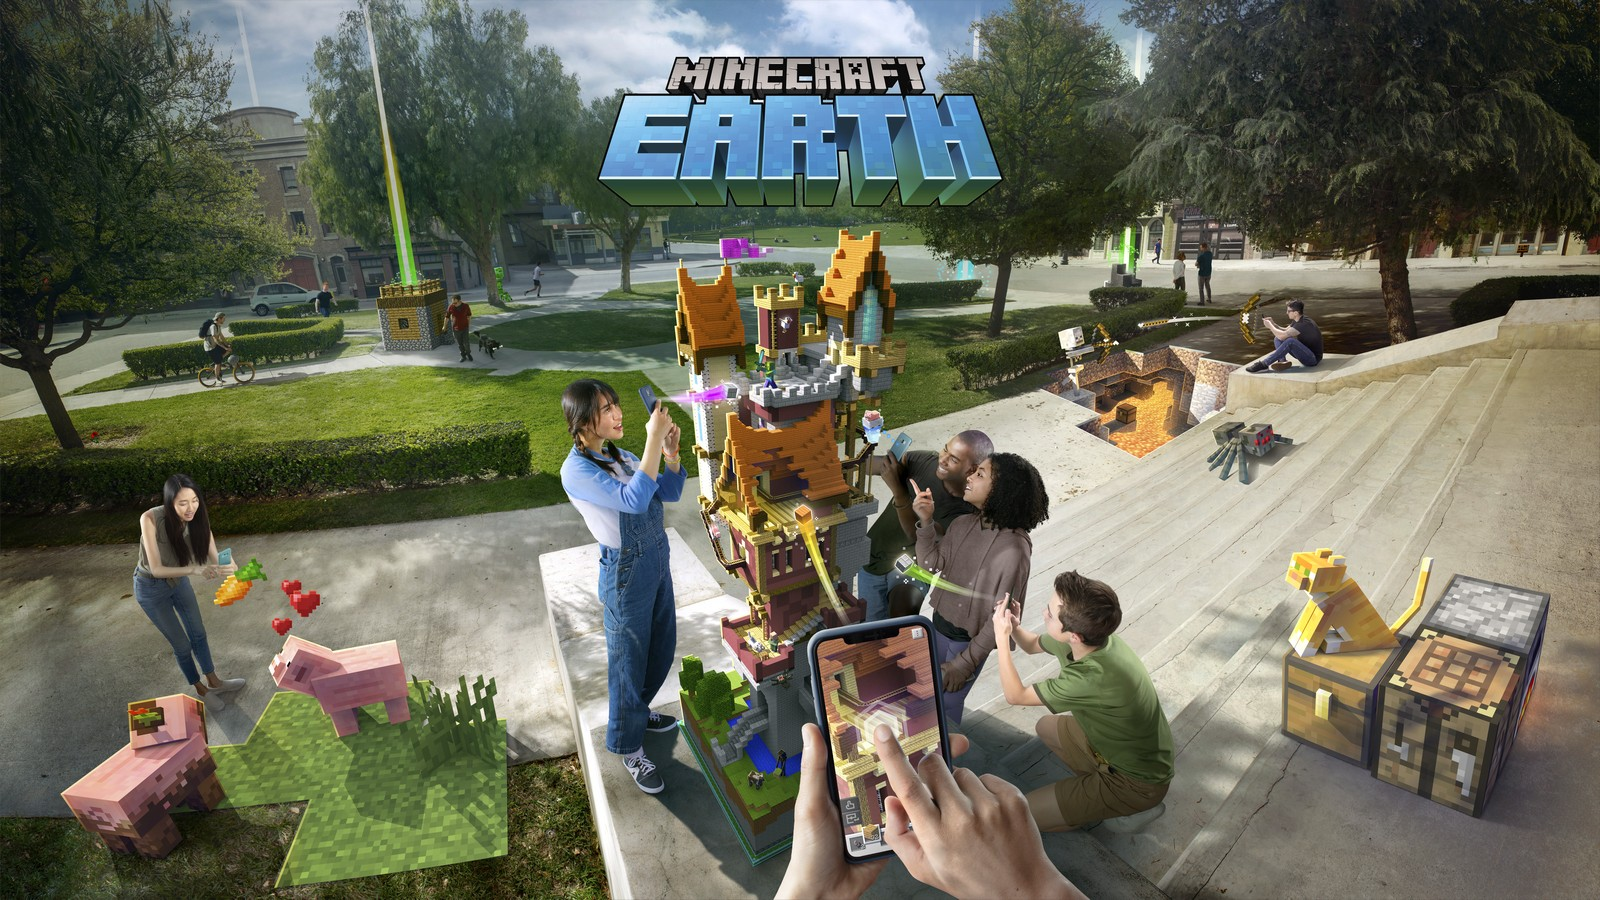 'Minecraft' Your World in Upcoming Mobile AR Game